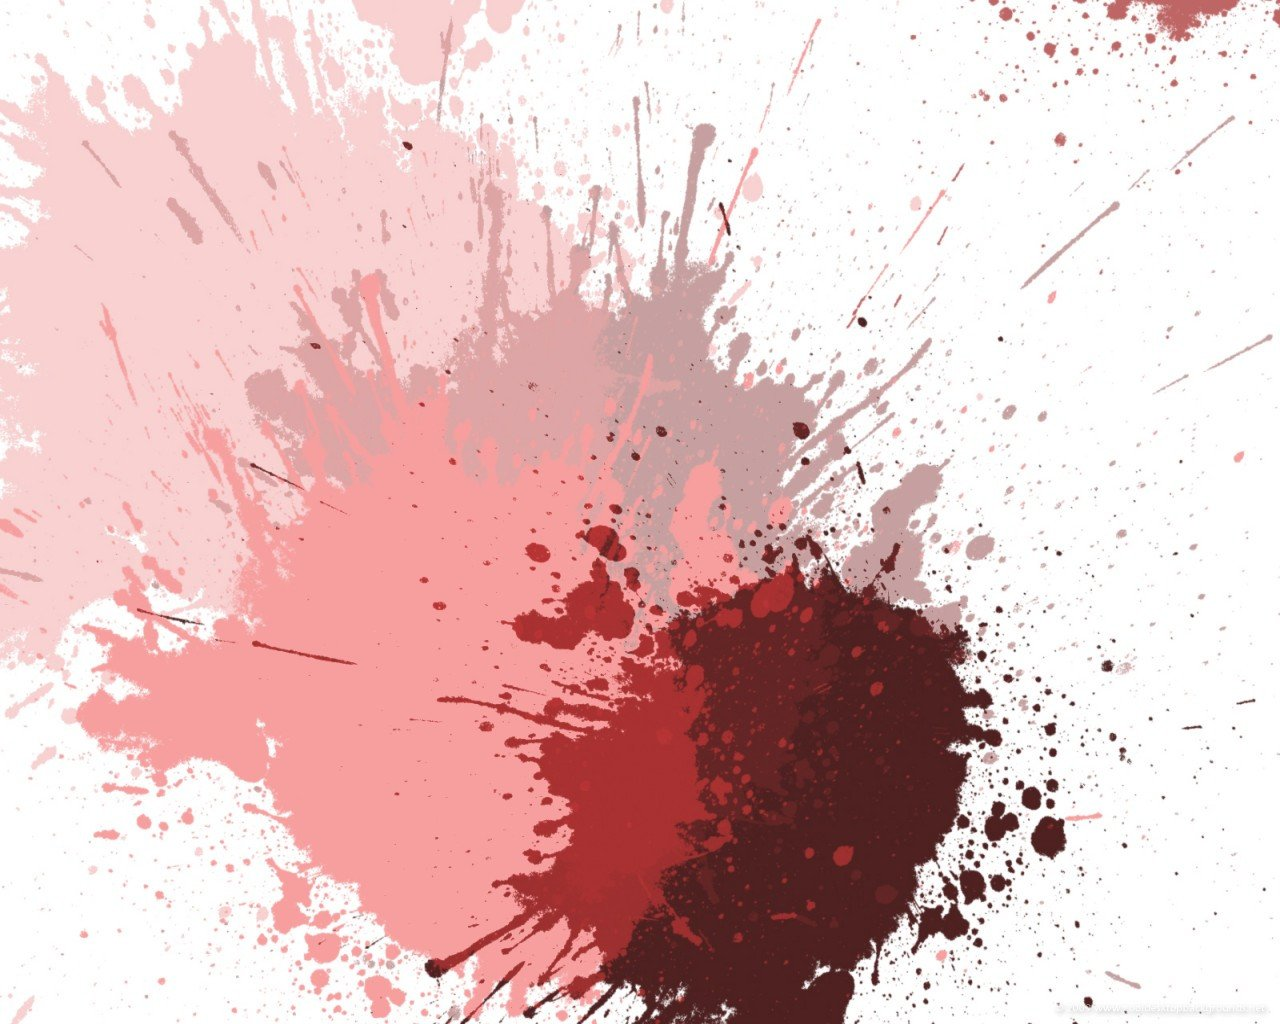 Blood Splatter Powerpoint Templates Blood Splatter Background Powerpoint Backgrounds for